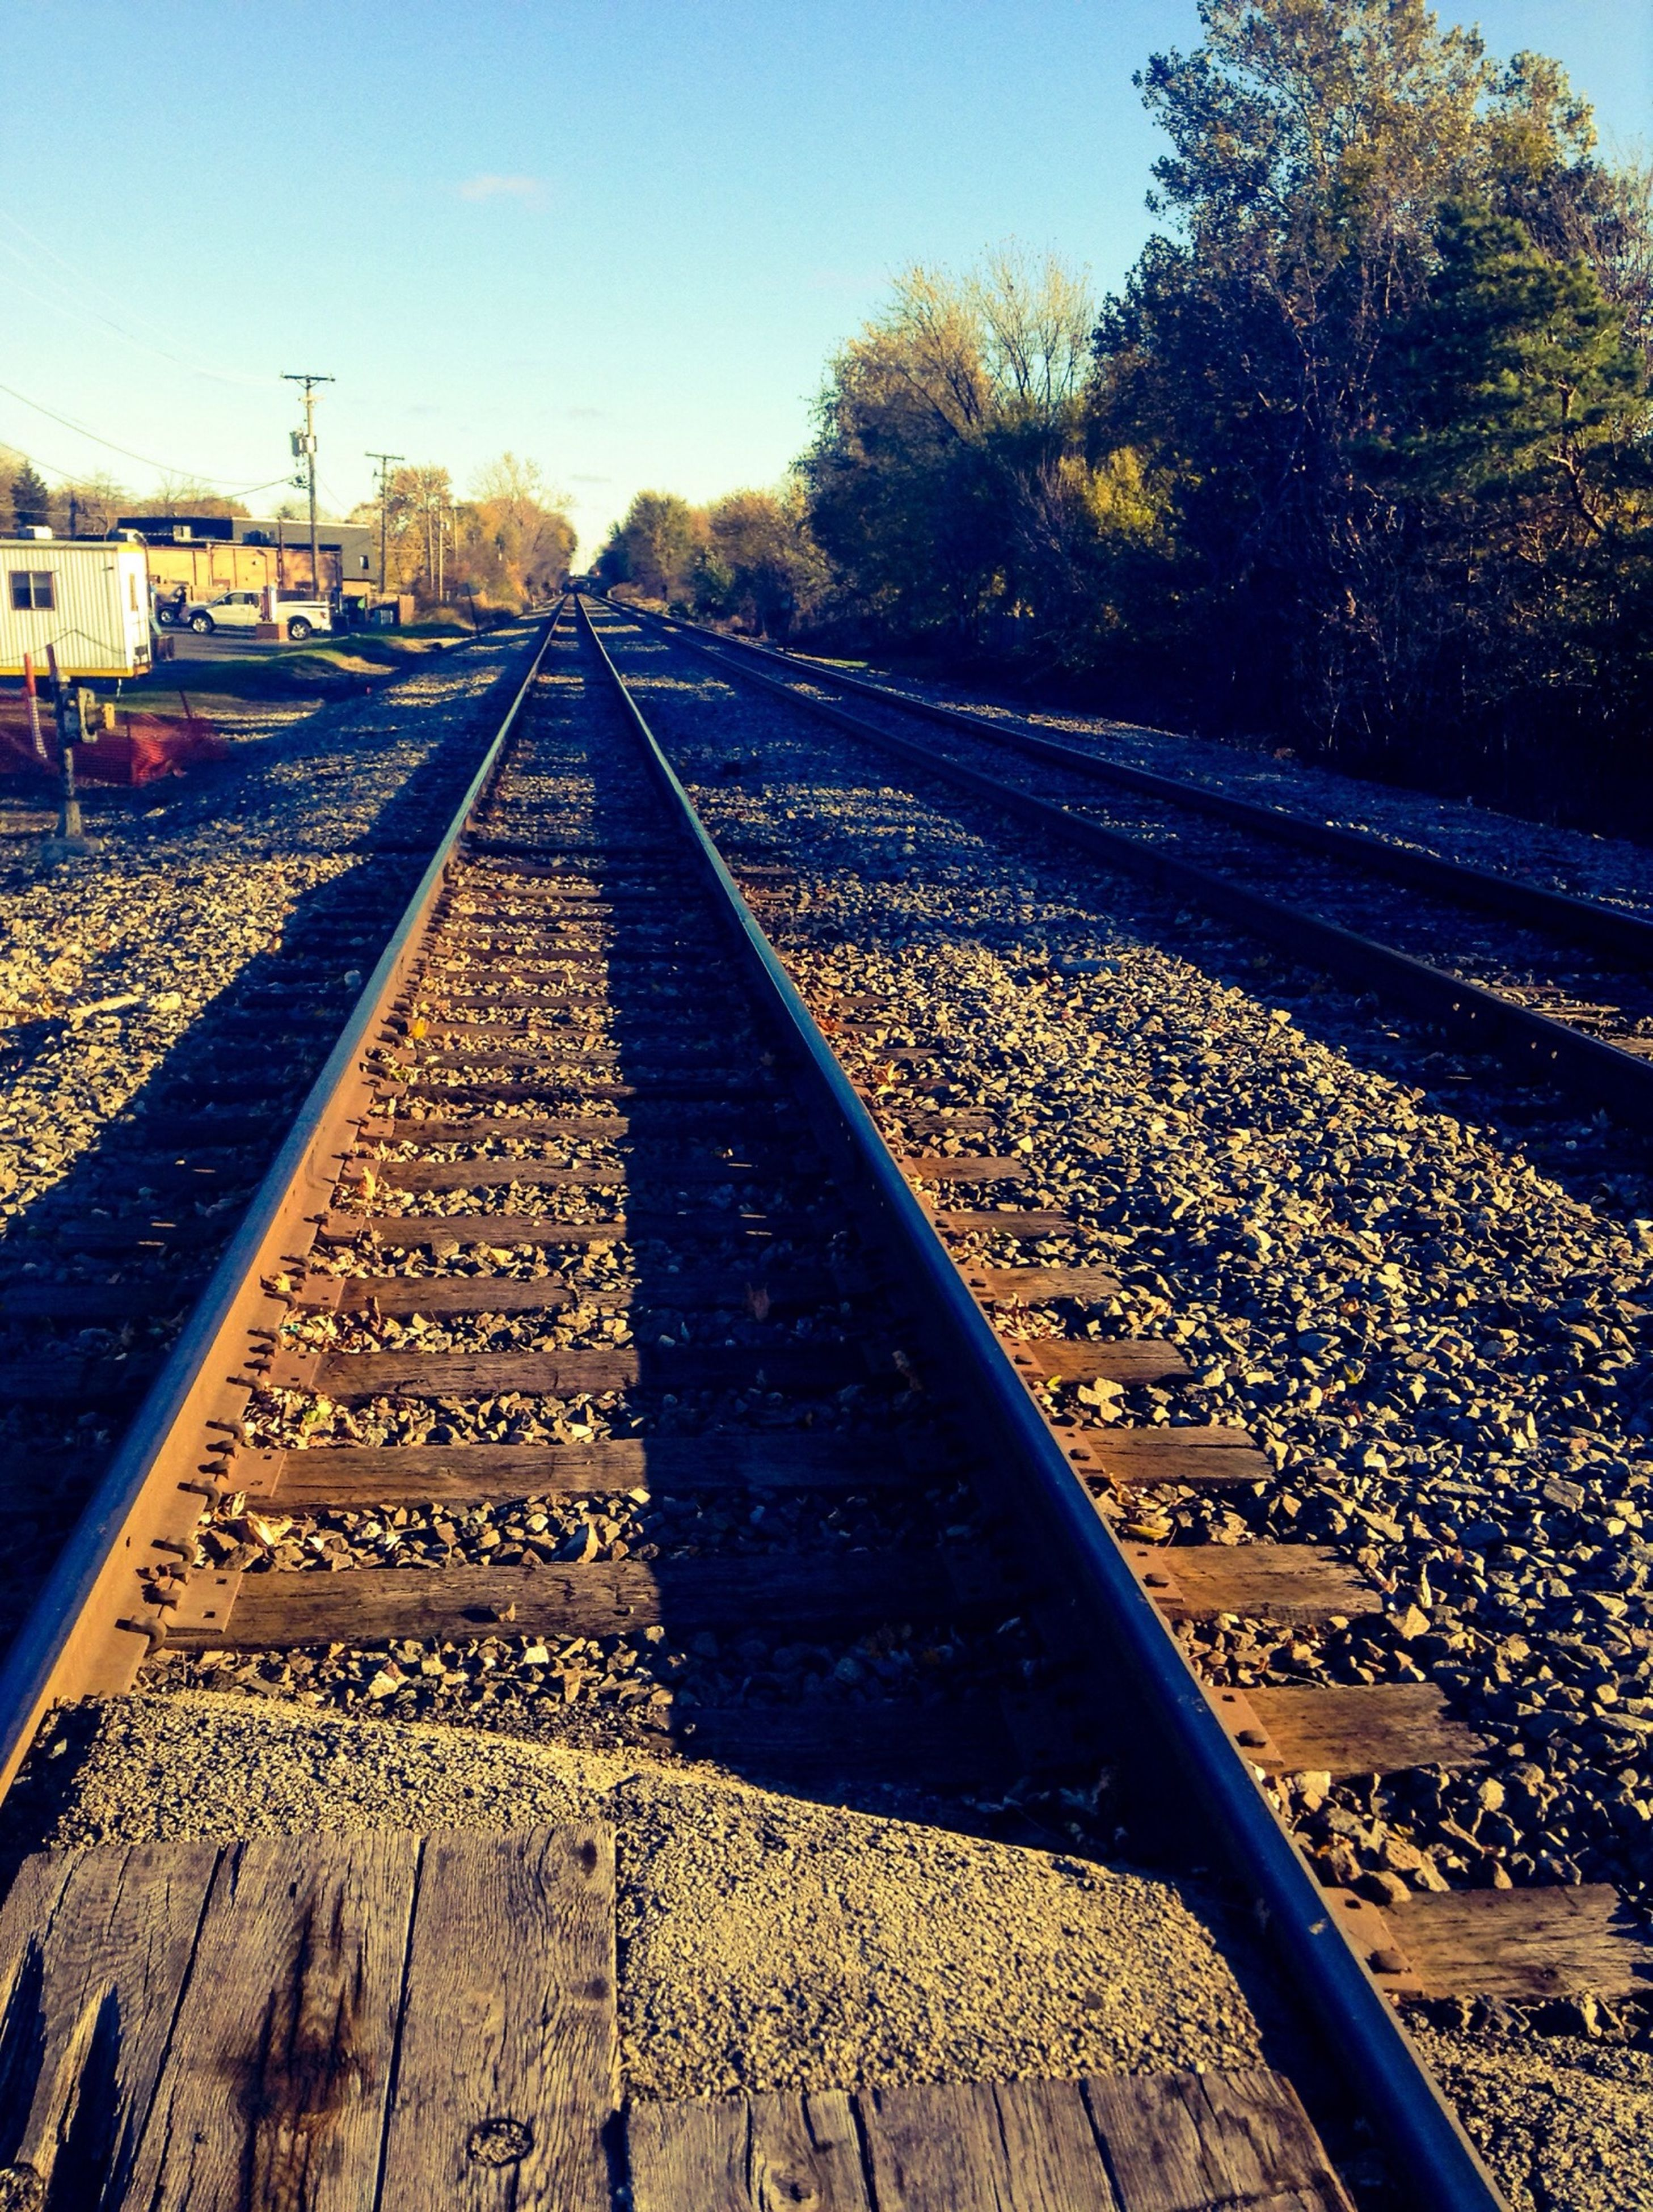 transportation, railroad track, diminishing perspective, the way forward, rail transportation, vanishing point, tree, clear sky, sky, road, road marking, surface level, travel, railway track, day, outdoors, public transportation, no people, stone - object, metal